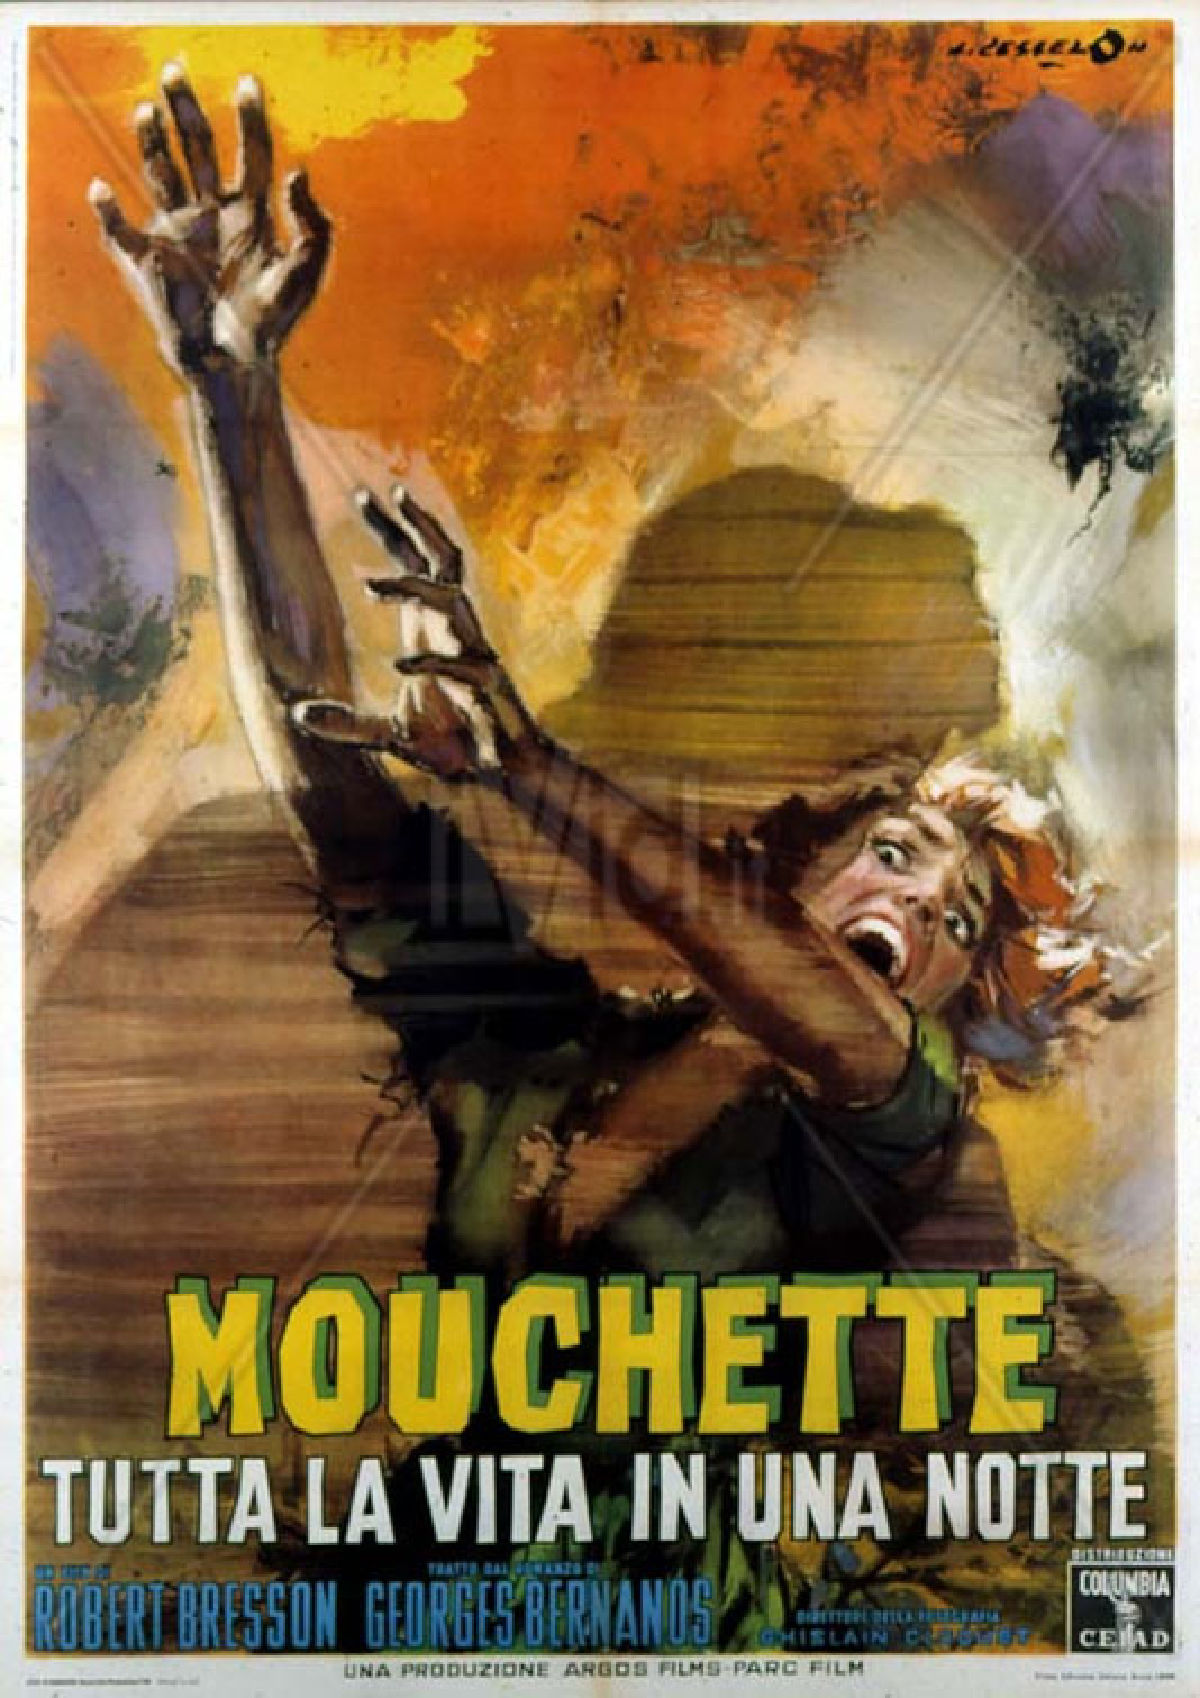 'Mouchette' movie poster